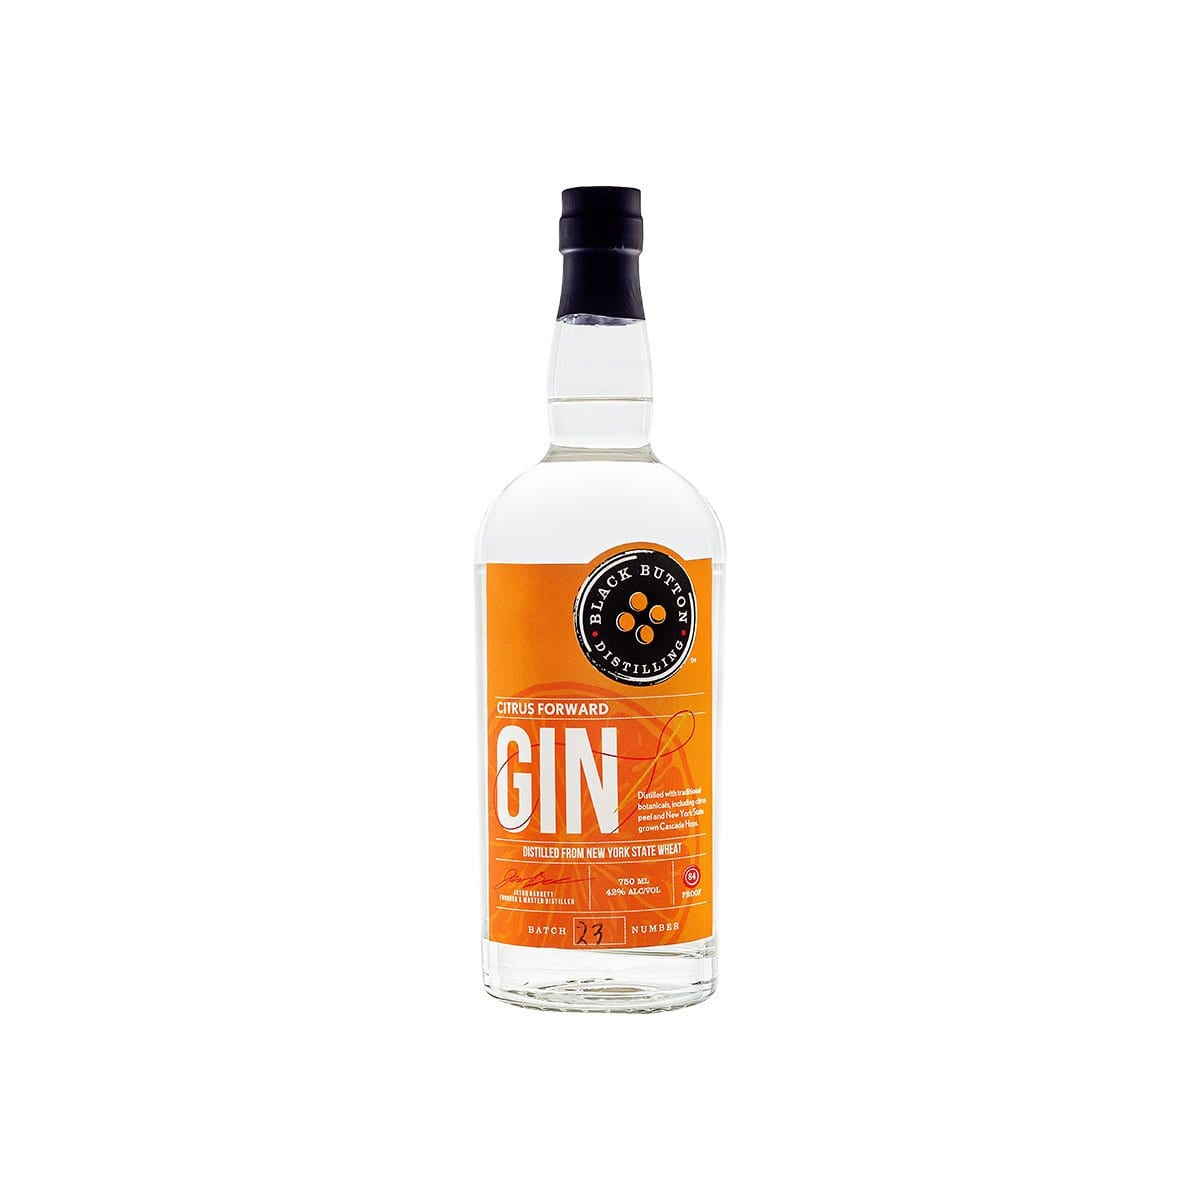 Black Button Citrus Forward Gin bottle